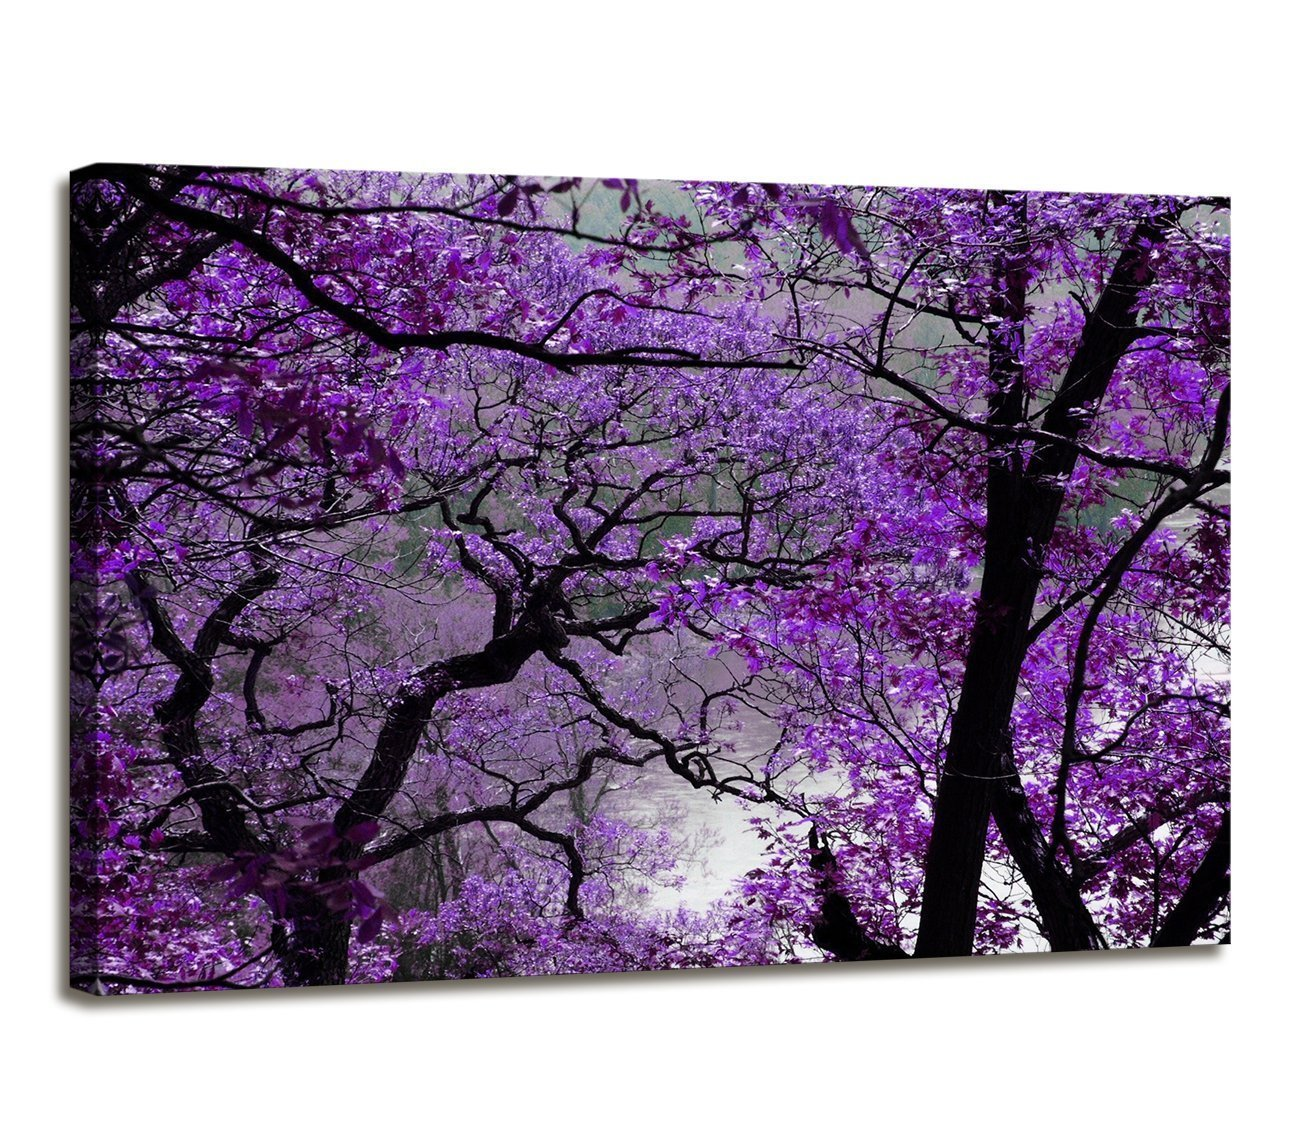 Purple20inx40in youkuart Canvas Prints Purple Tree Framed Canvas Wall Art for Home Decor Perfect Wall Purple Scenery Decorations for Living Room Bedroom Office Each Panel